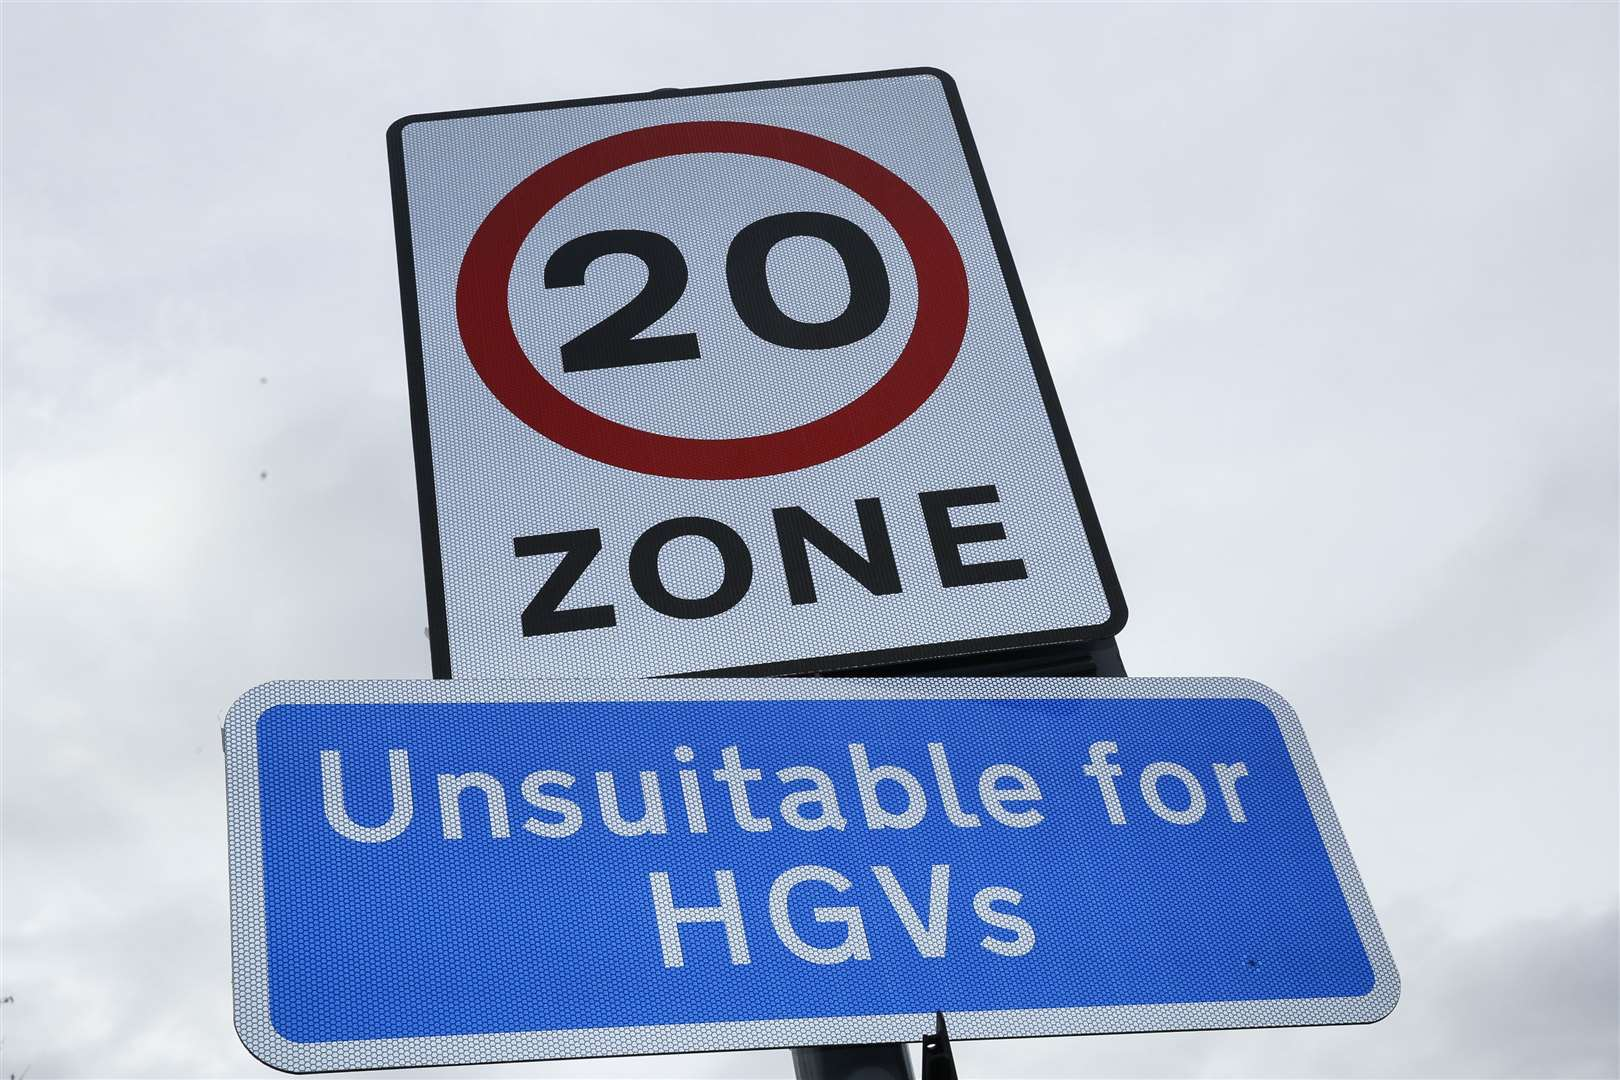 New 20mph speed limit signs are going up all over